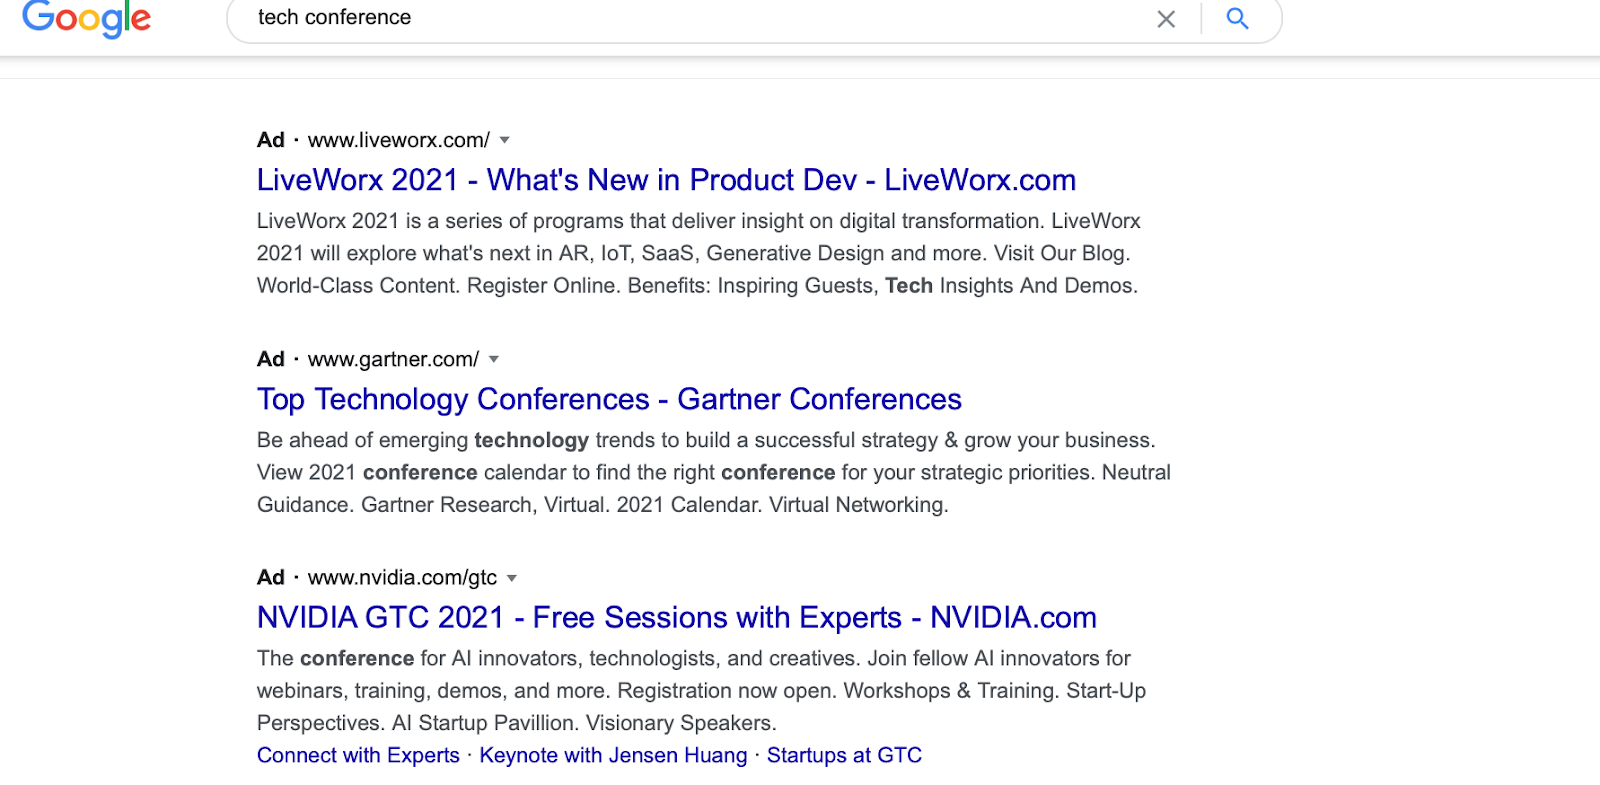 Google Ads for tech conferences, expanding reach as an event registration strategy.